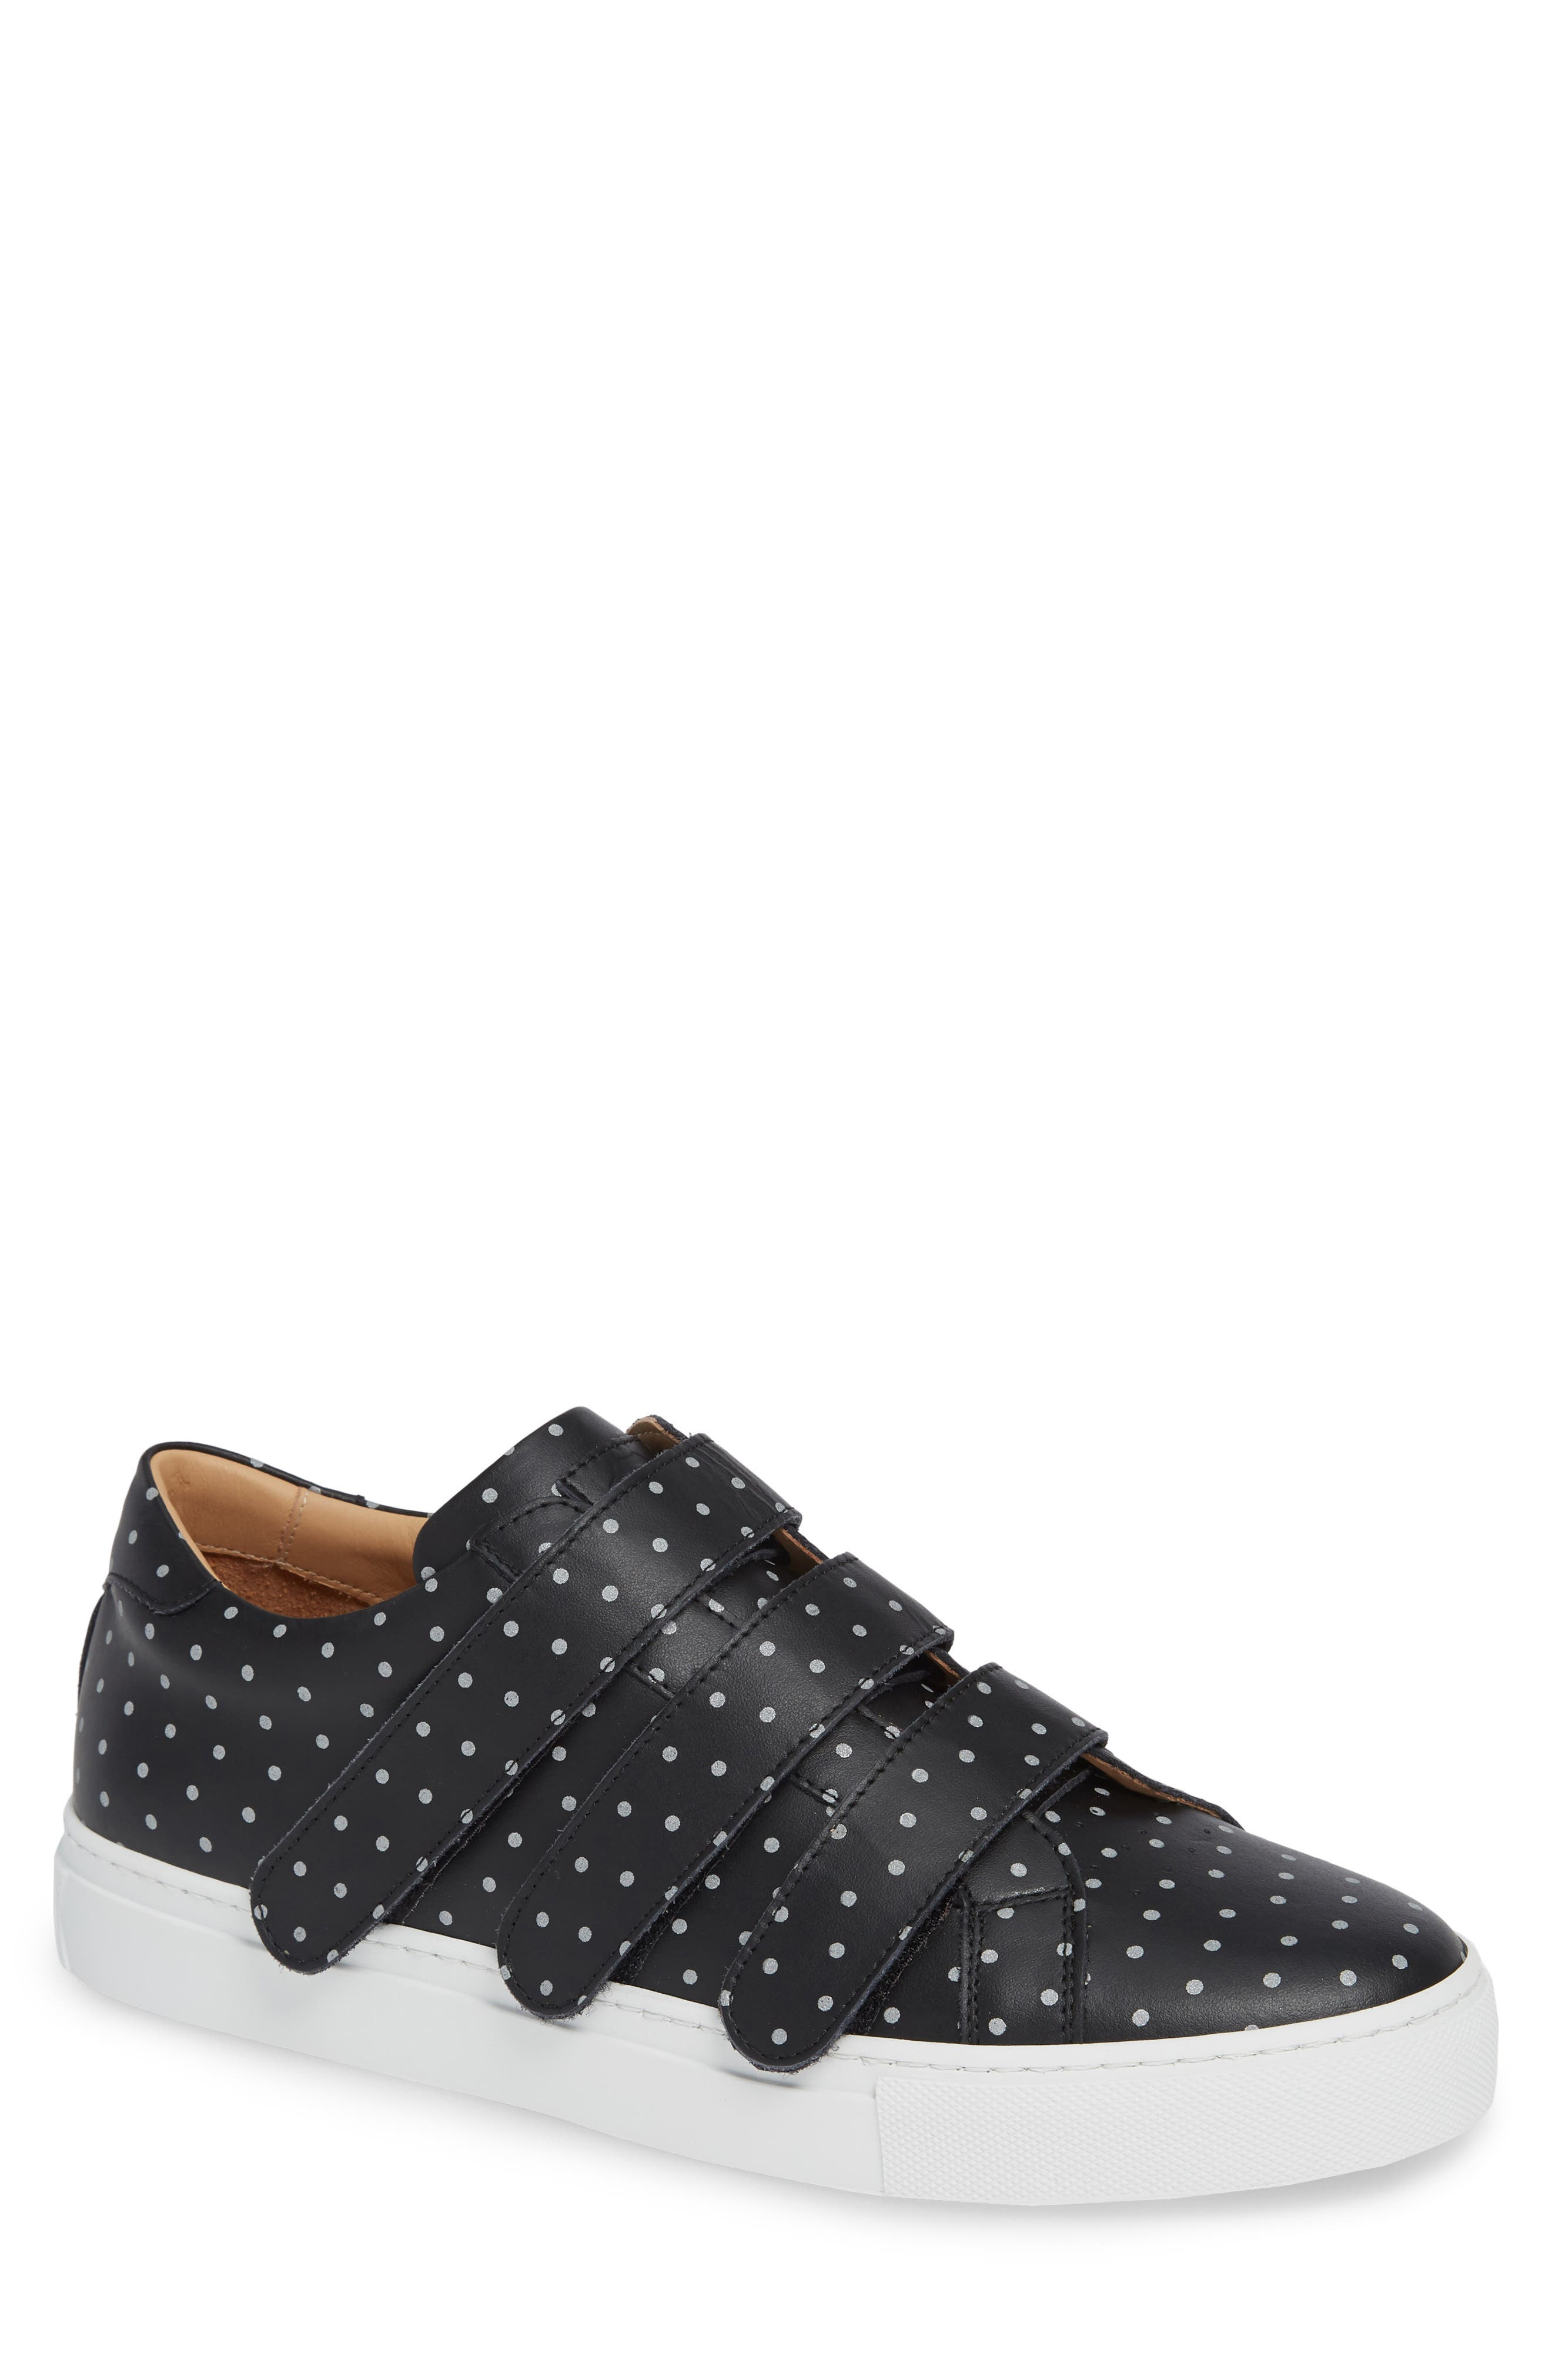 Nick Wooster x GREATS Royale Low Top Sneaker,                             Main thumbnail 1, color,                             BLACK LEATHER 3M